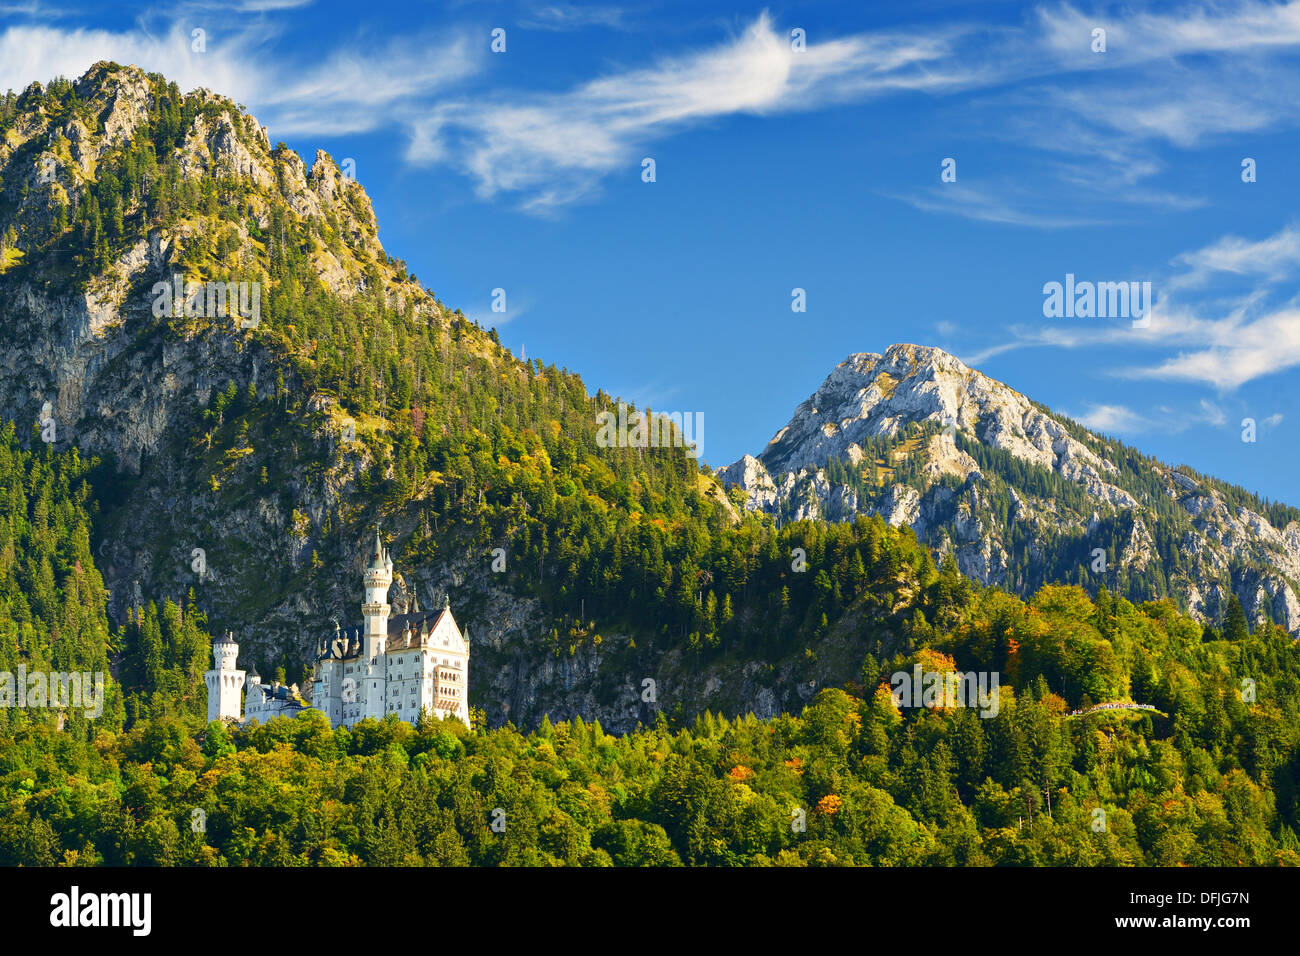 Neuschwanstein Castle in the Bavarian Alps of Germany. Stock Photo